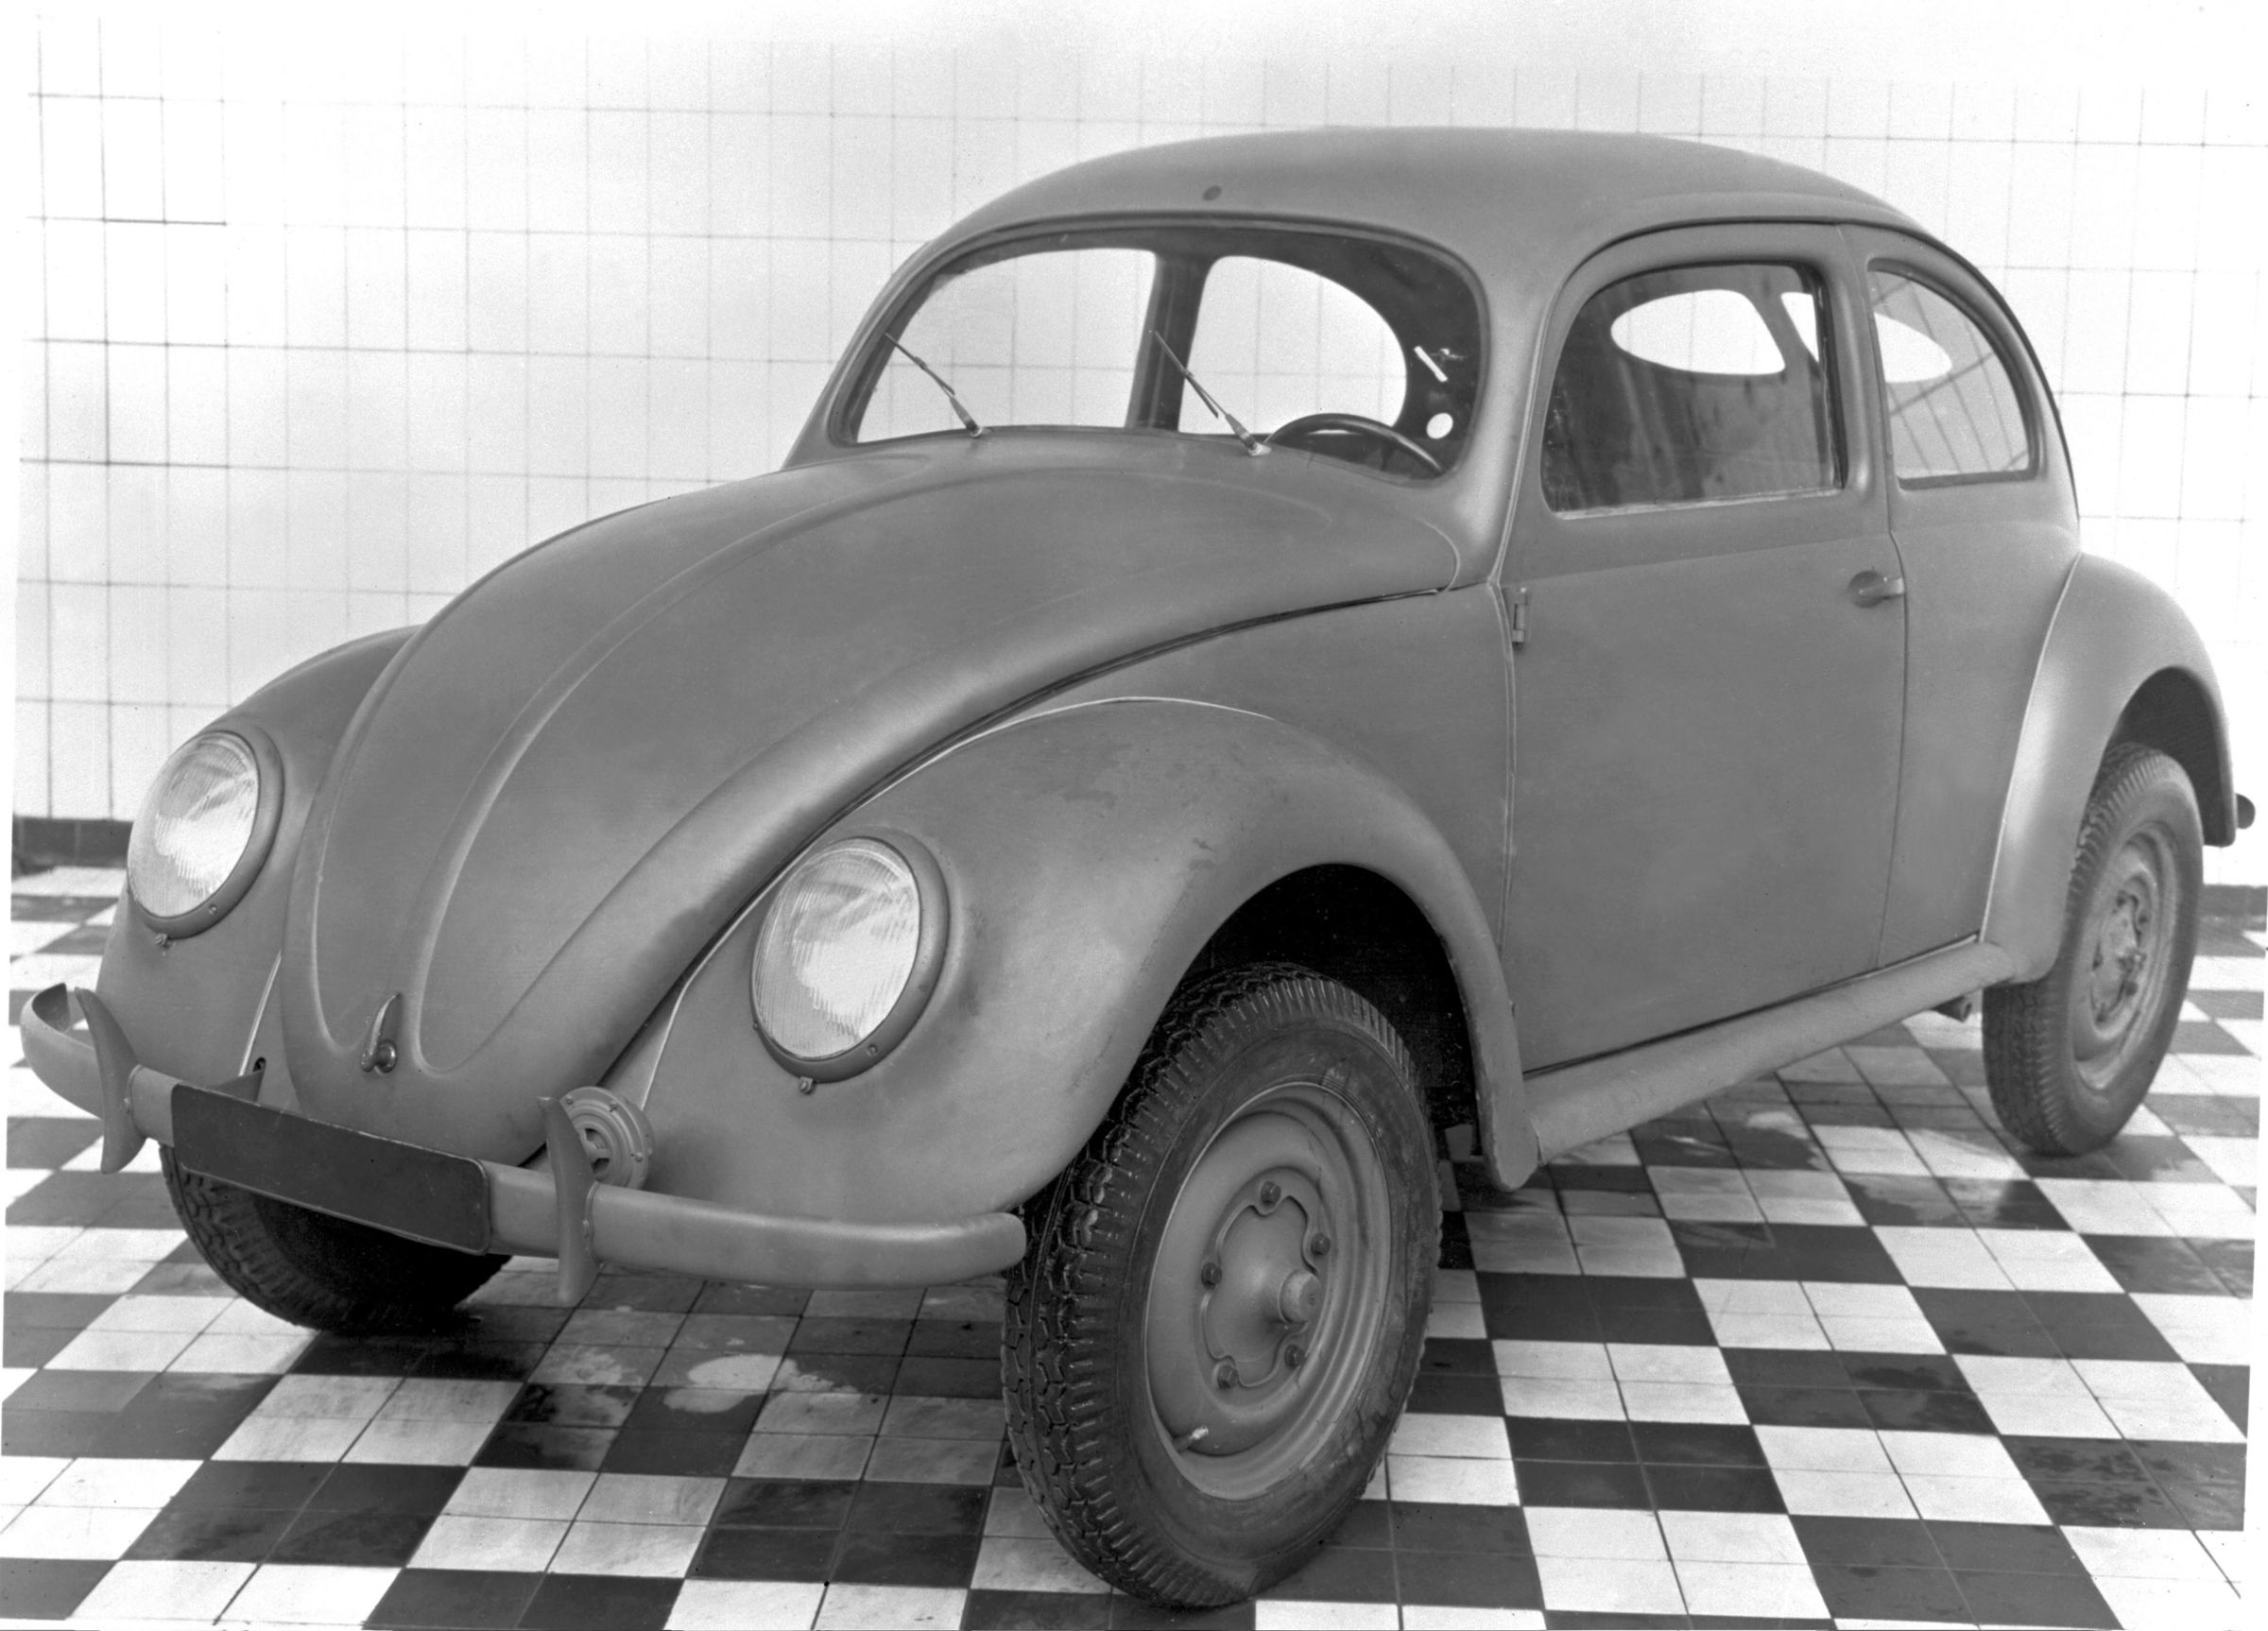 Postwar Beetle built for the British army